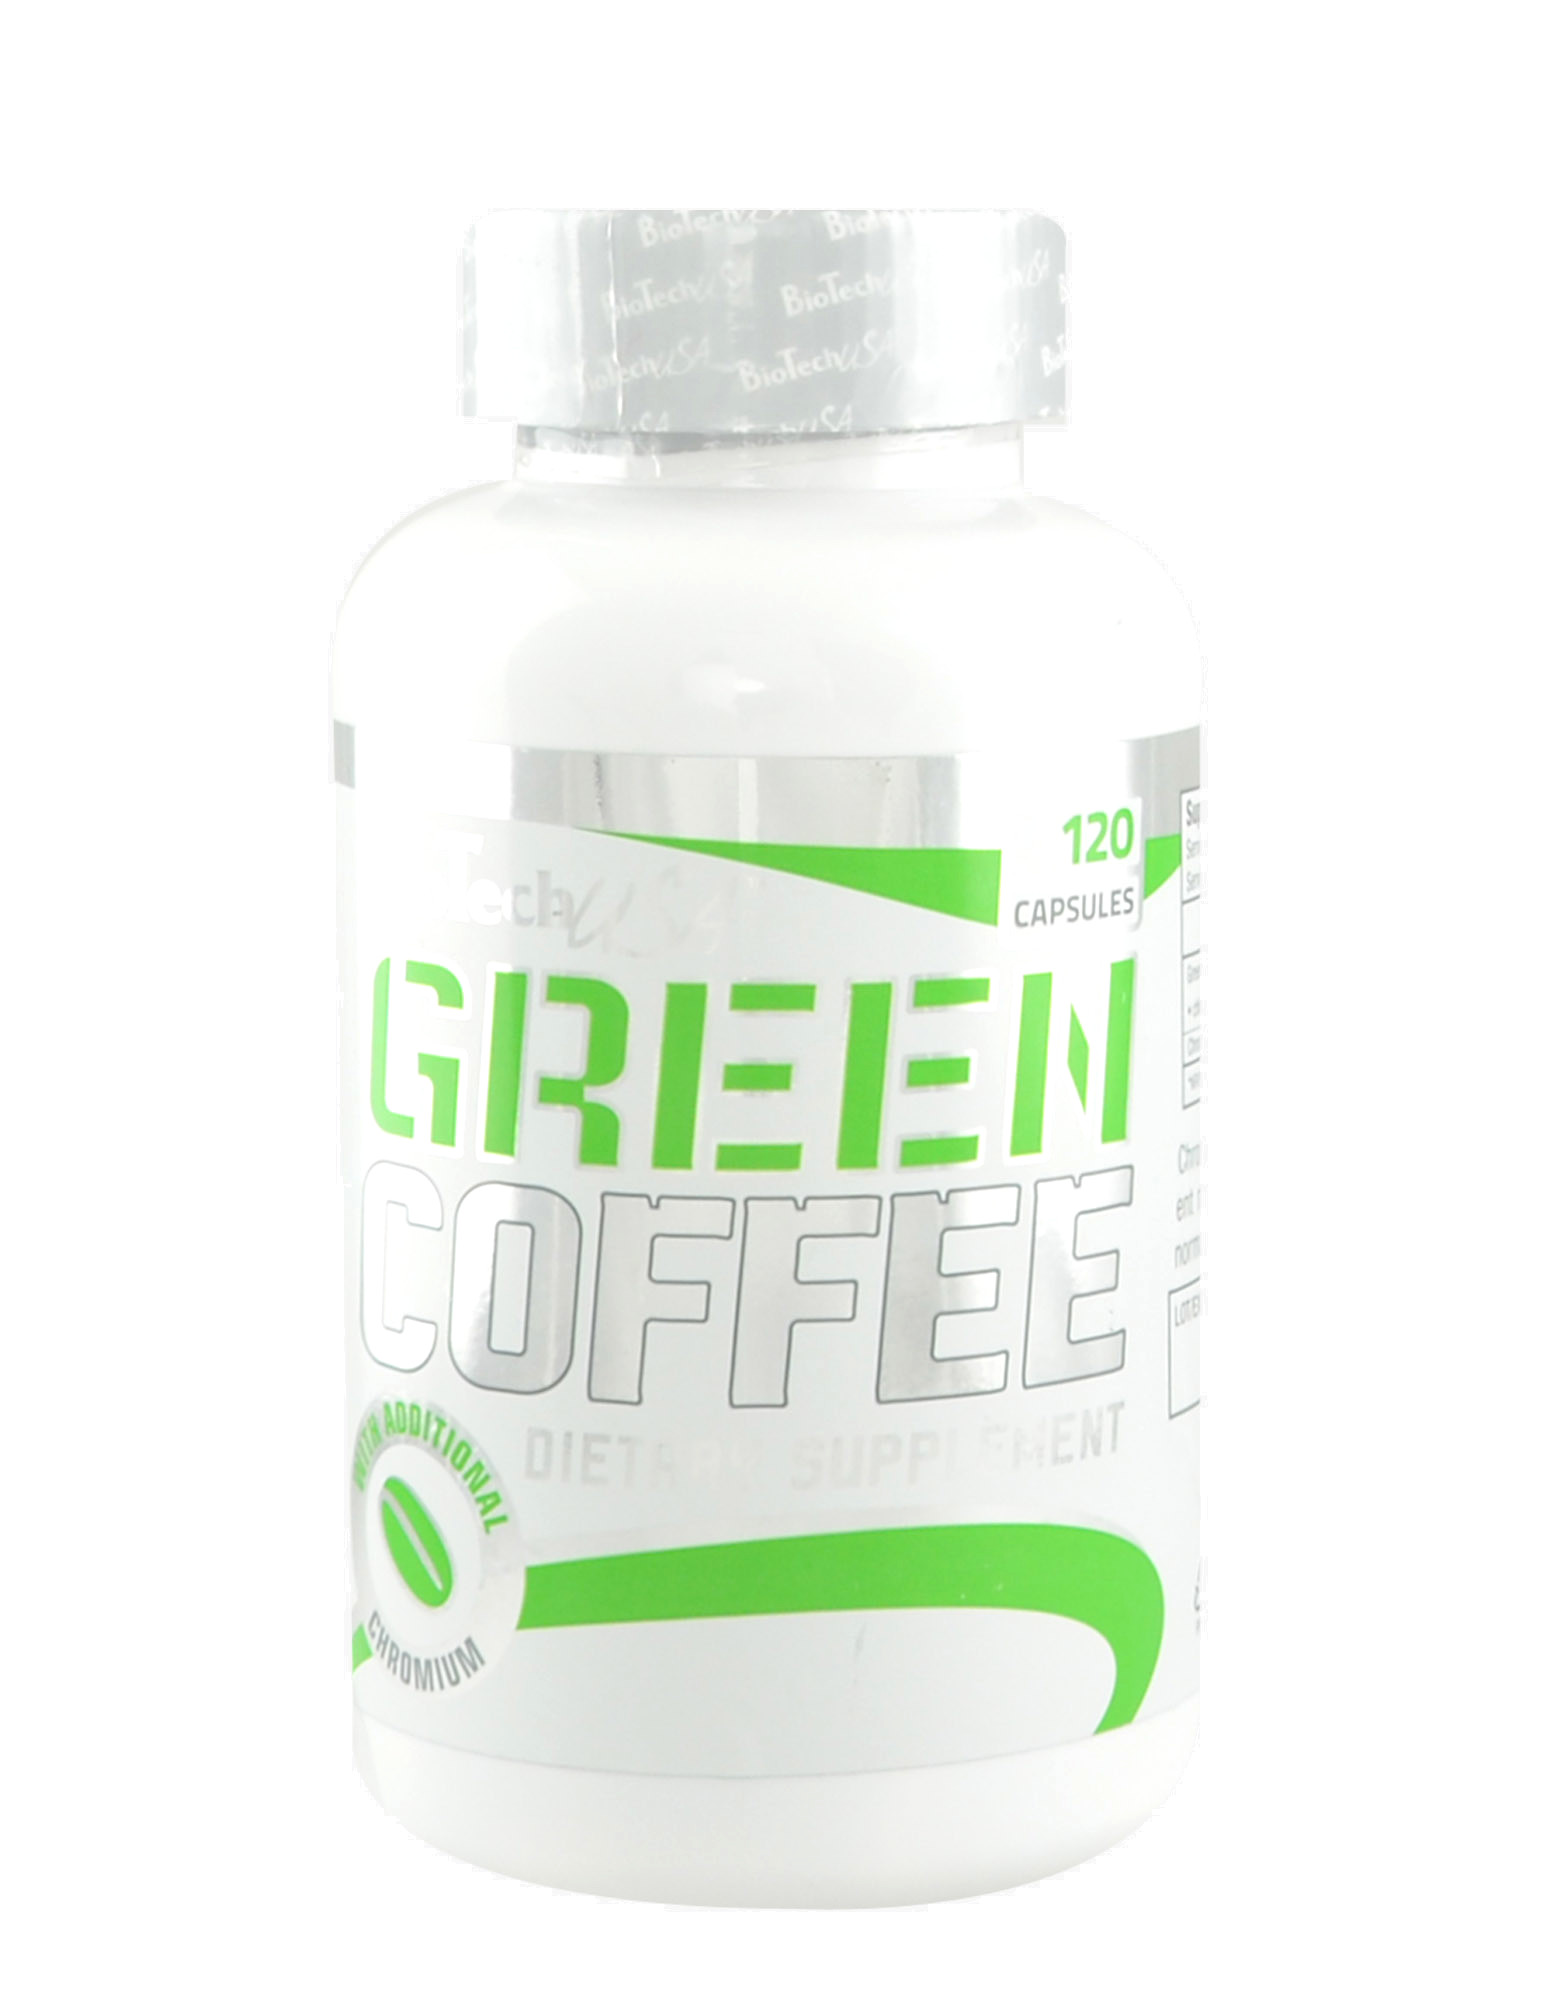 Is green coffee effective image 4